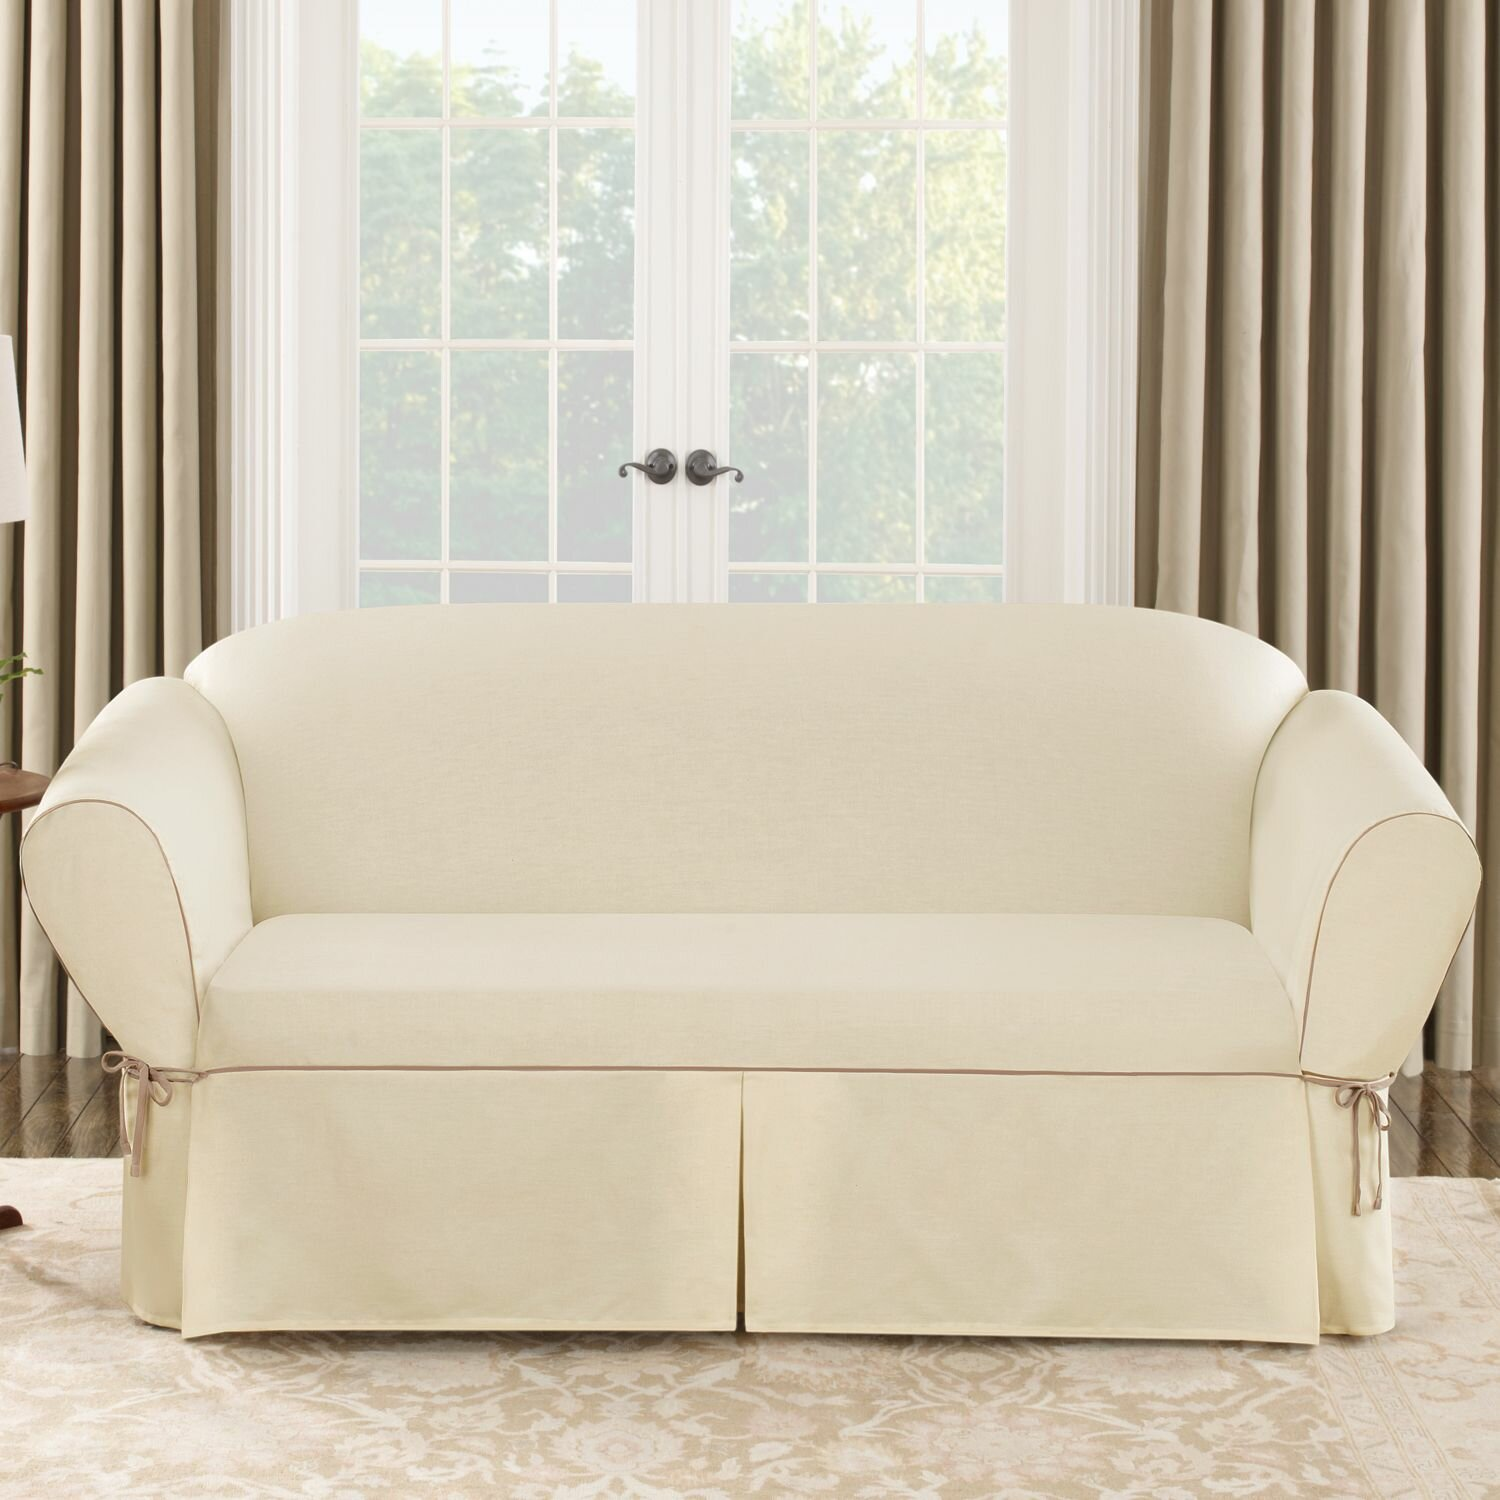 Sofas With Slip Covers: Sure Fit Cotton Duck Sofa Slipcover & Reviews